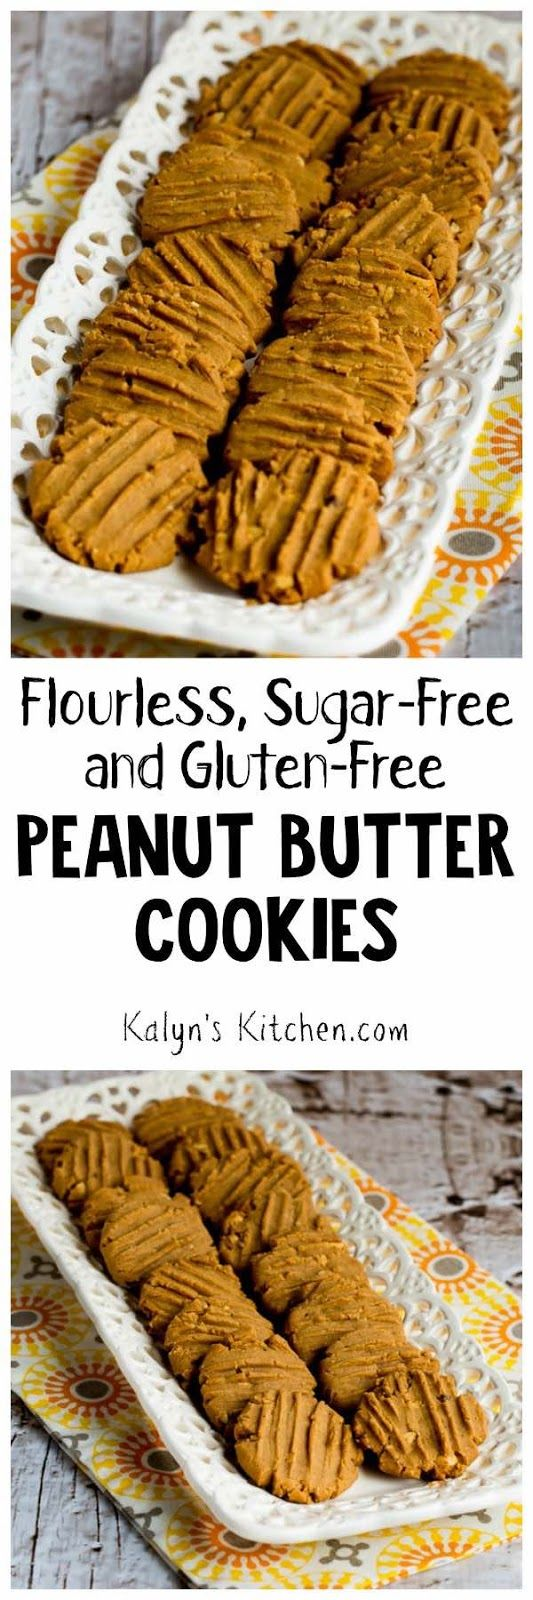 Using stevia in cookie recipes